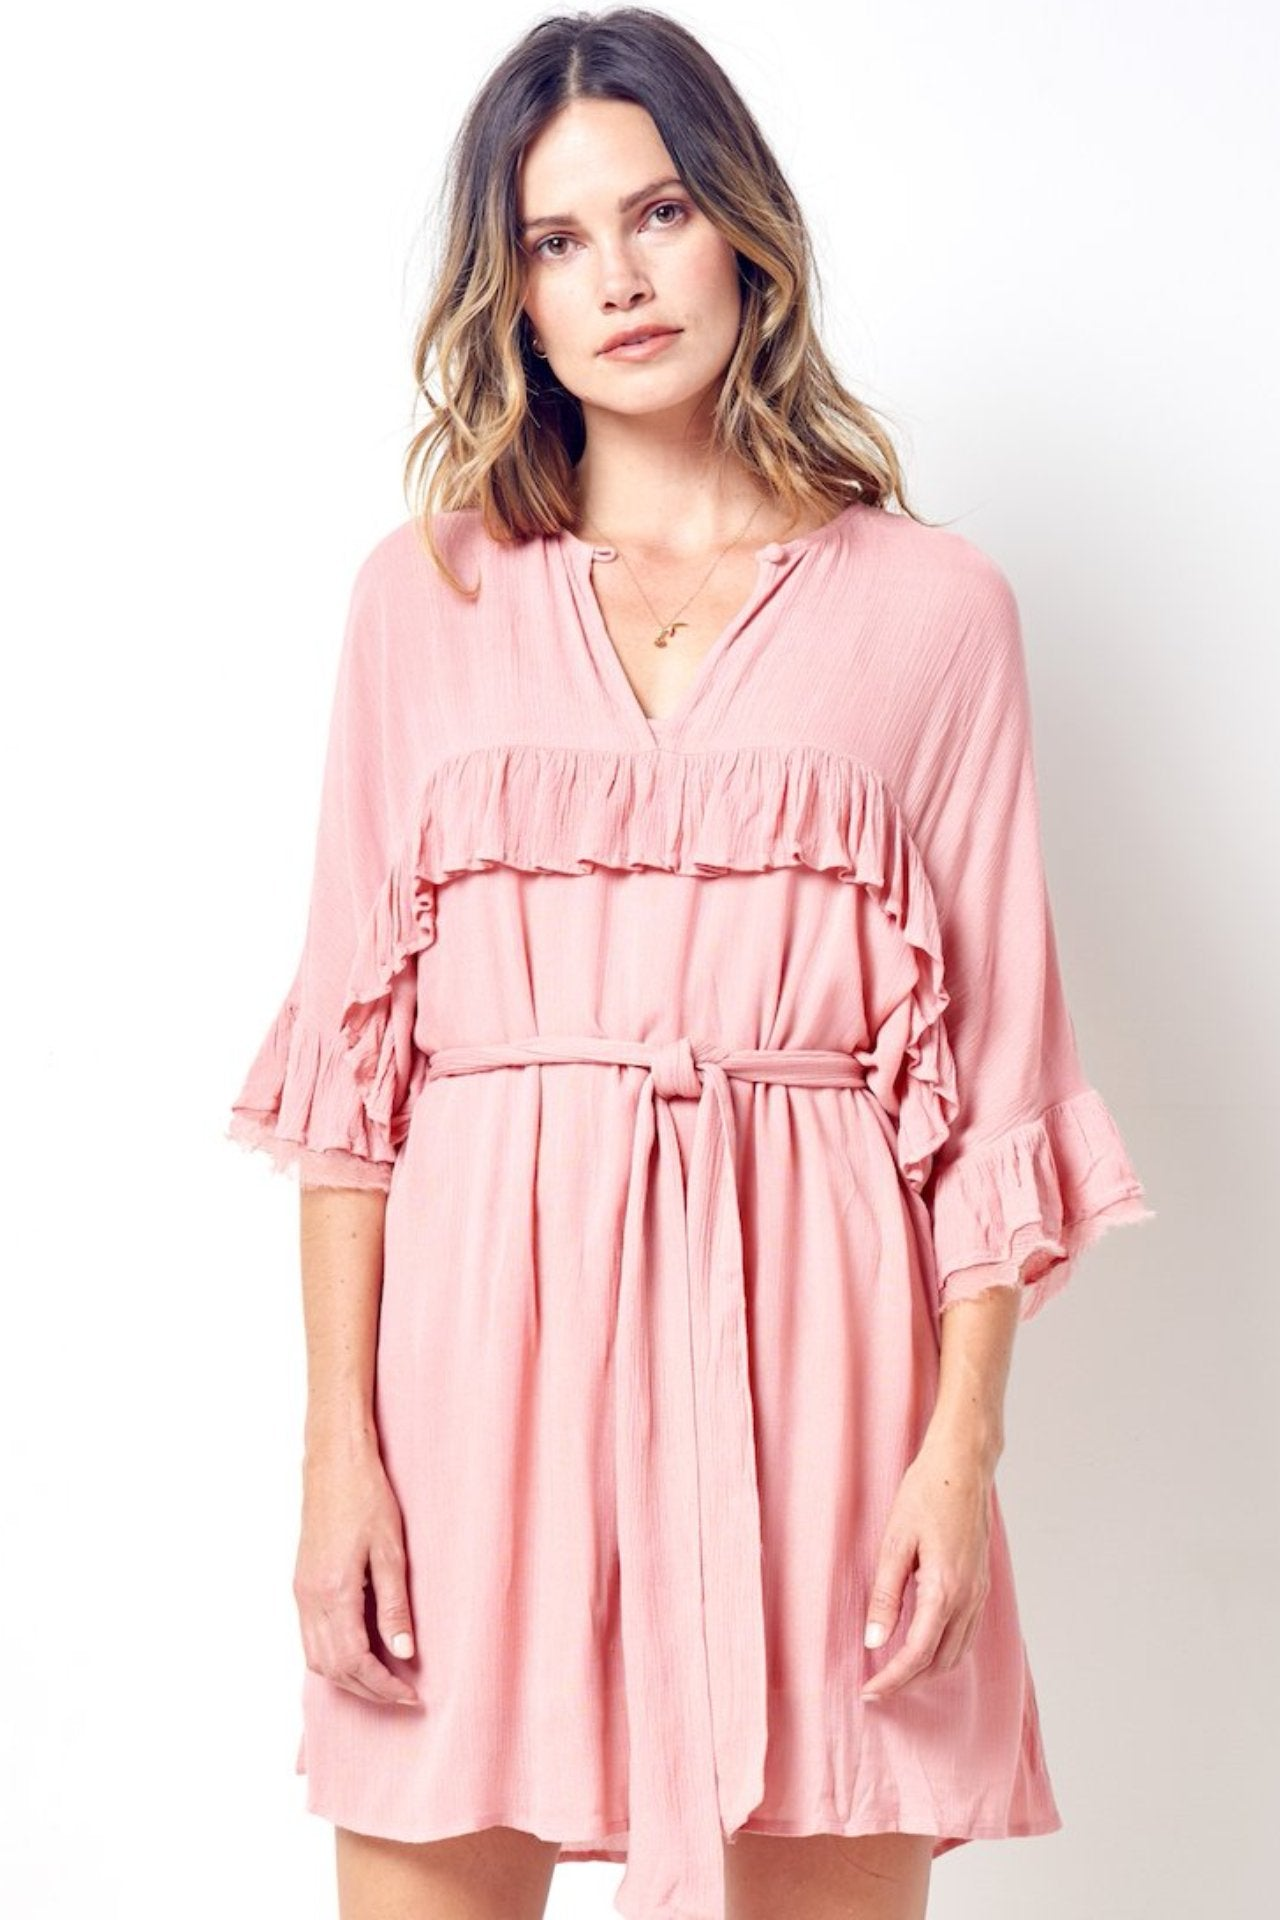 OLIVIA Prairie Dress with Ruffles and Tie